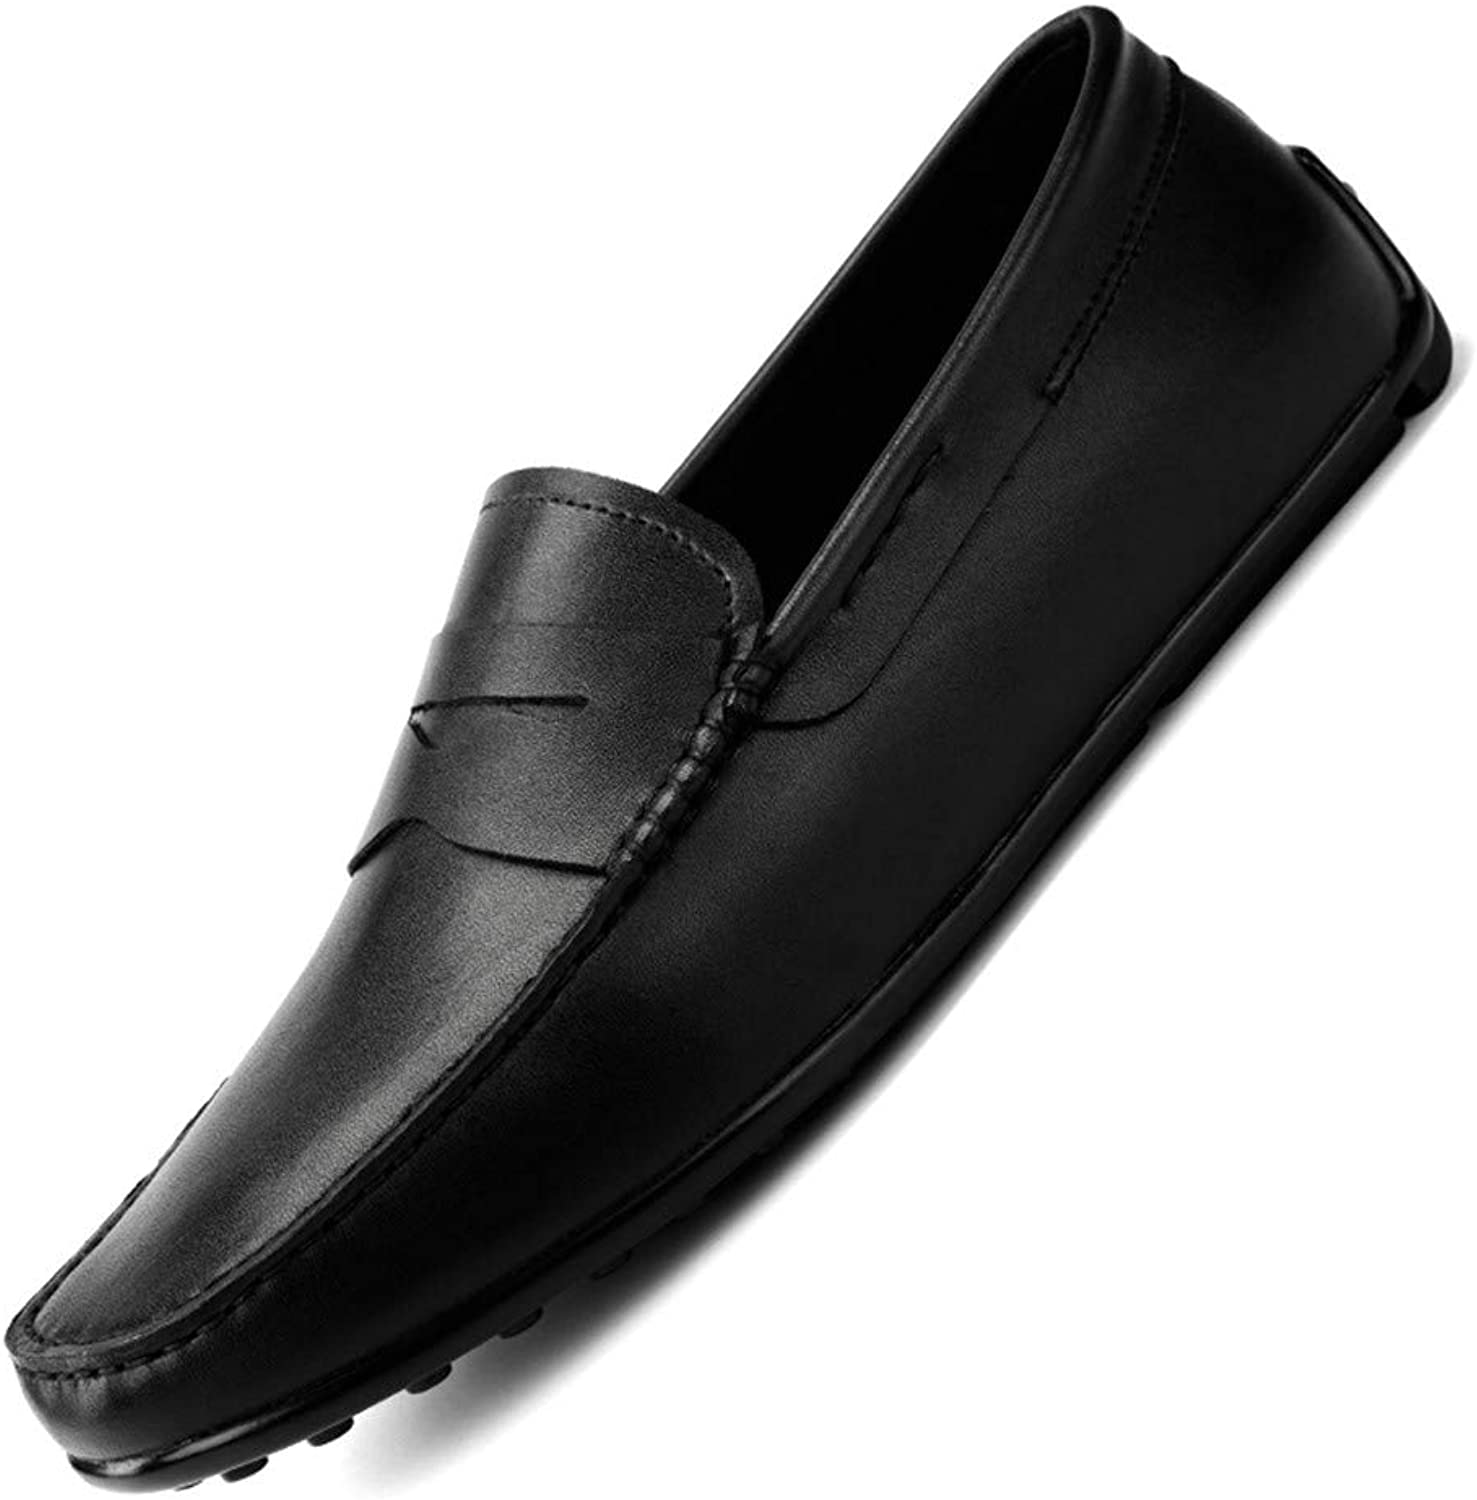 Men's shoes Casual Comfort Loafers & Slip-Ons Flat Loafers Spring, Autumn Comfort Lazy Business shoes Black,Black,39